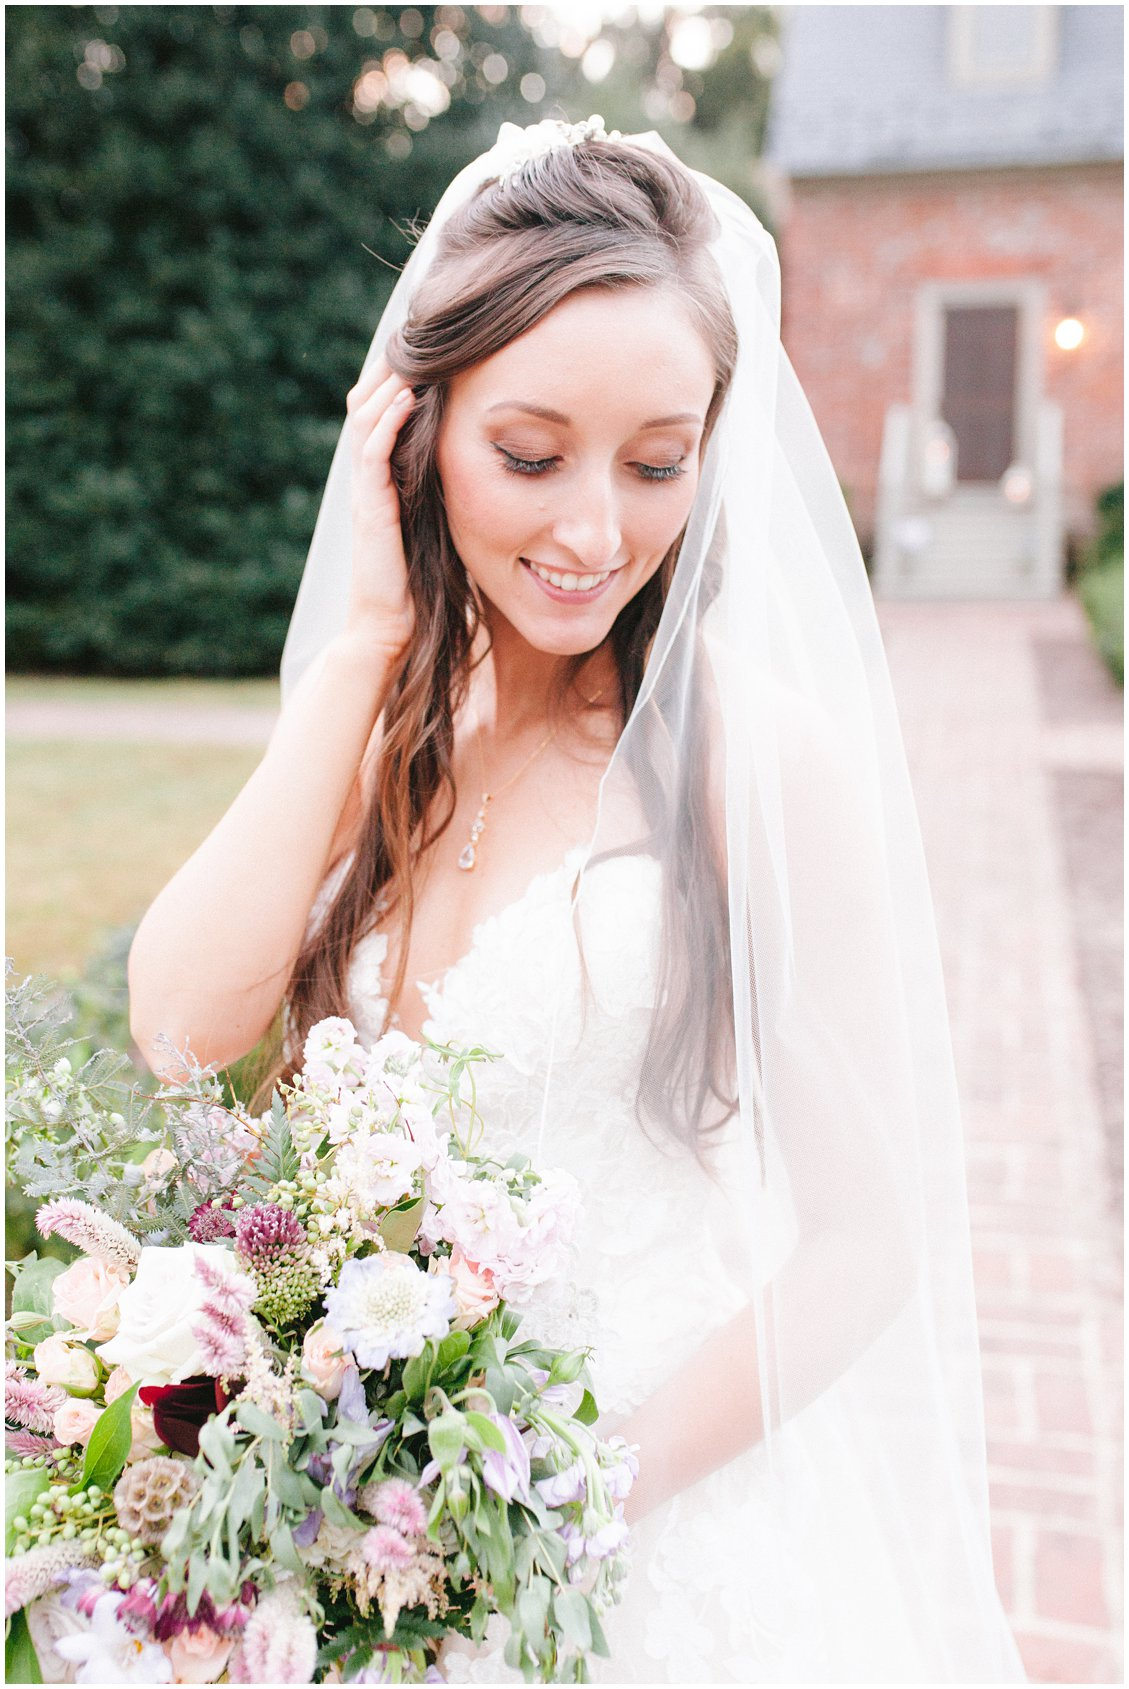 Intimate outdoor wedding at Seven Springs Farm & Manor Richmond VA captured by Tara & Stephen of Pattengale Photography